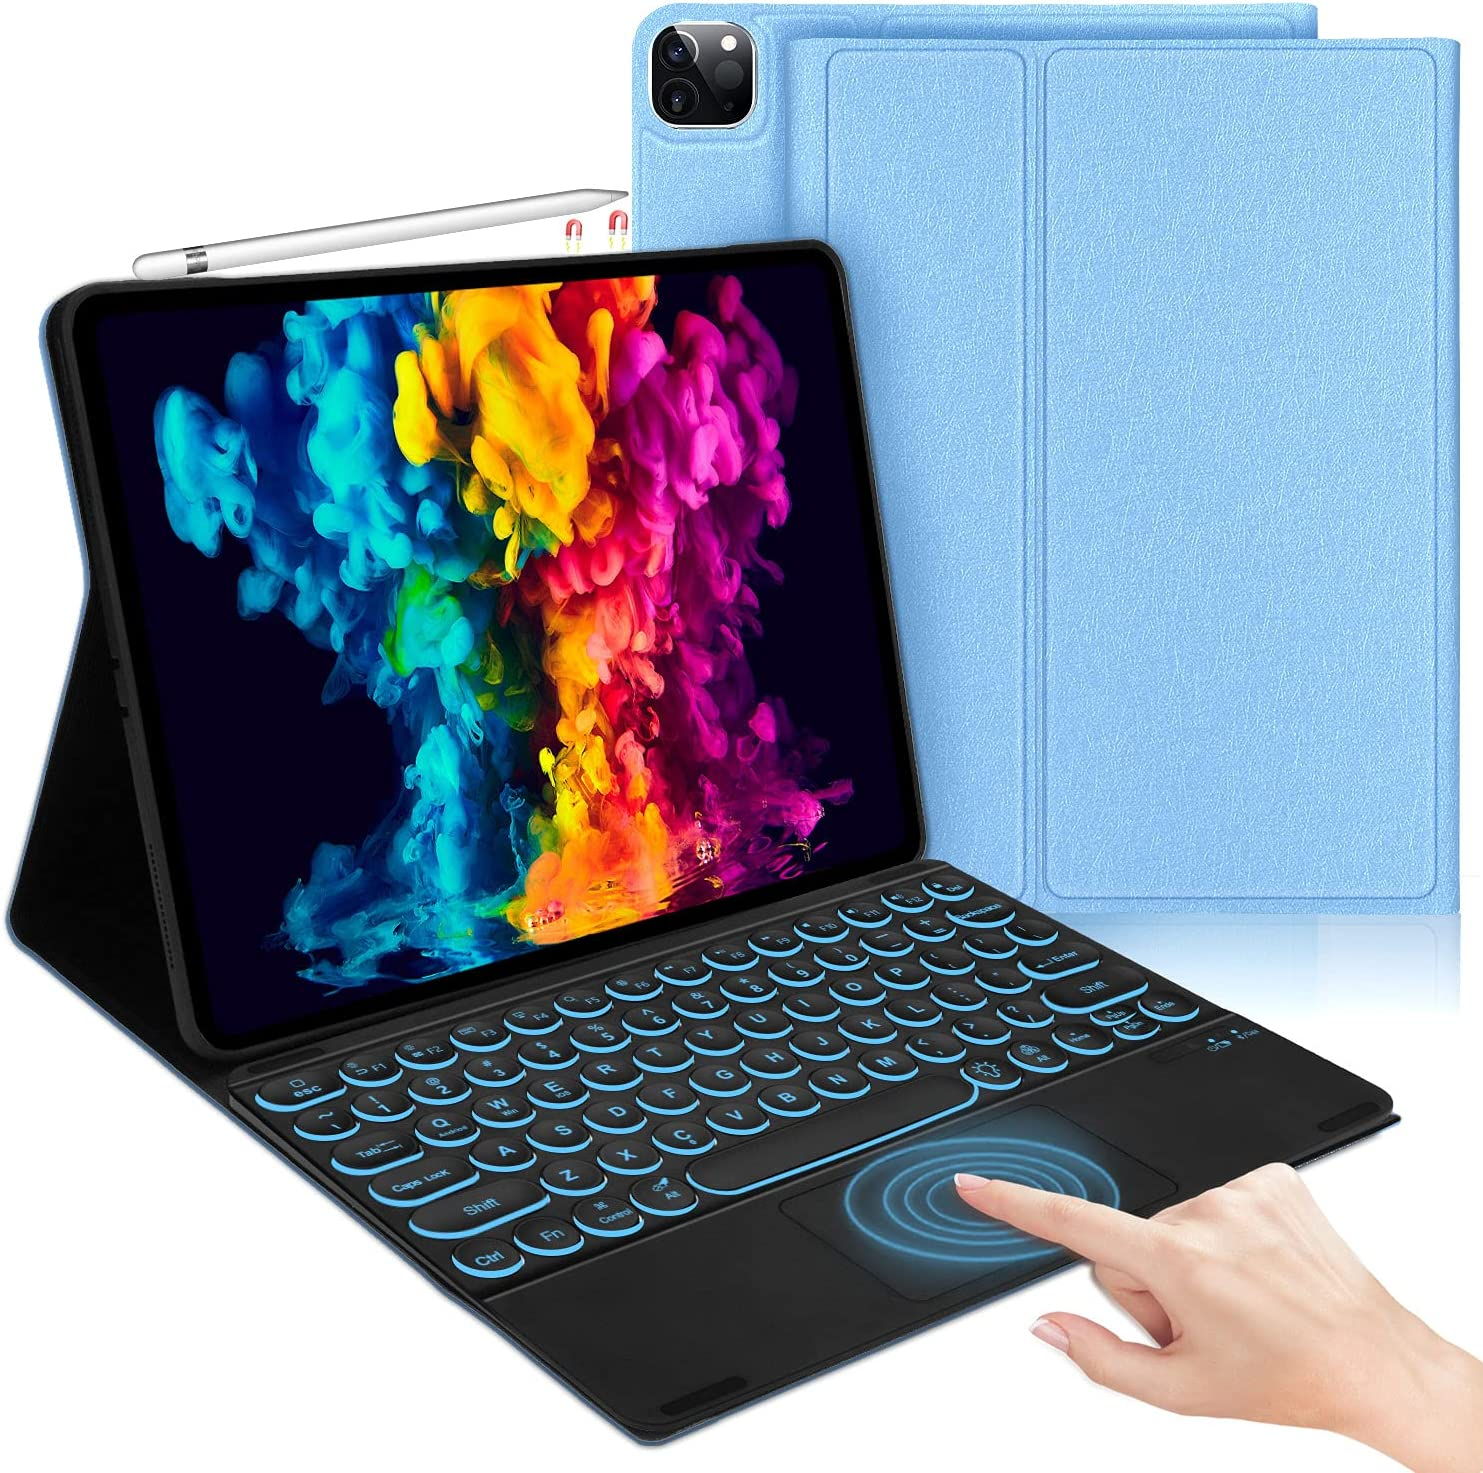 iPad Pro 12.9 Case with Keyboard 2021, Compatible with iPad Pro 12.9 inch 5th / 4th / 3rd Generation - Smart Touchpad - Detachable 7 Colors Backlit Keyboard - Smart Folio Cover for iPad Pro 12.9, Blue